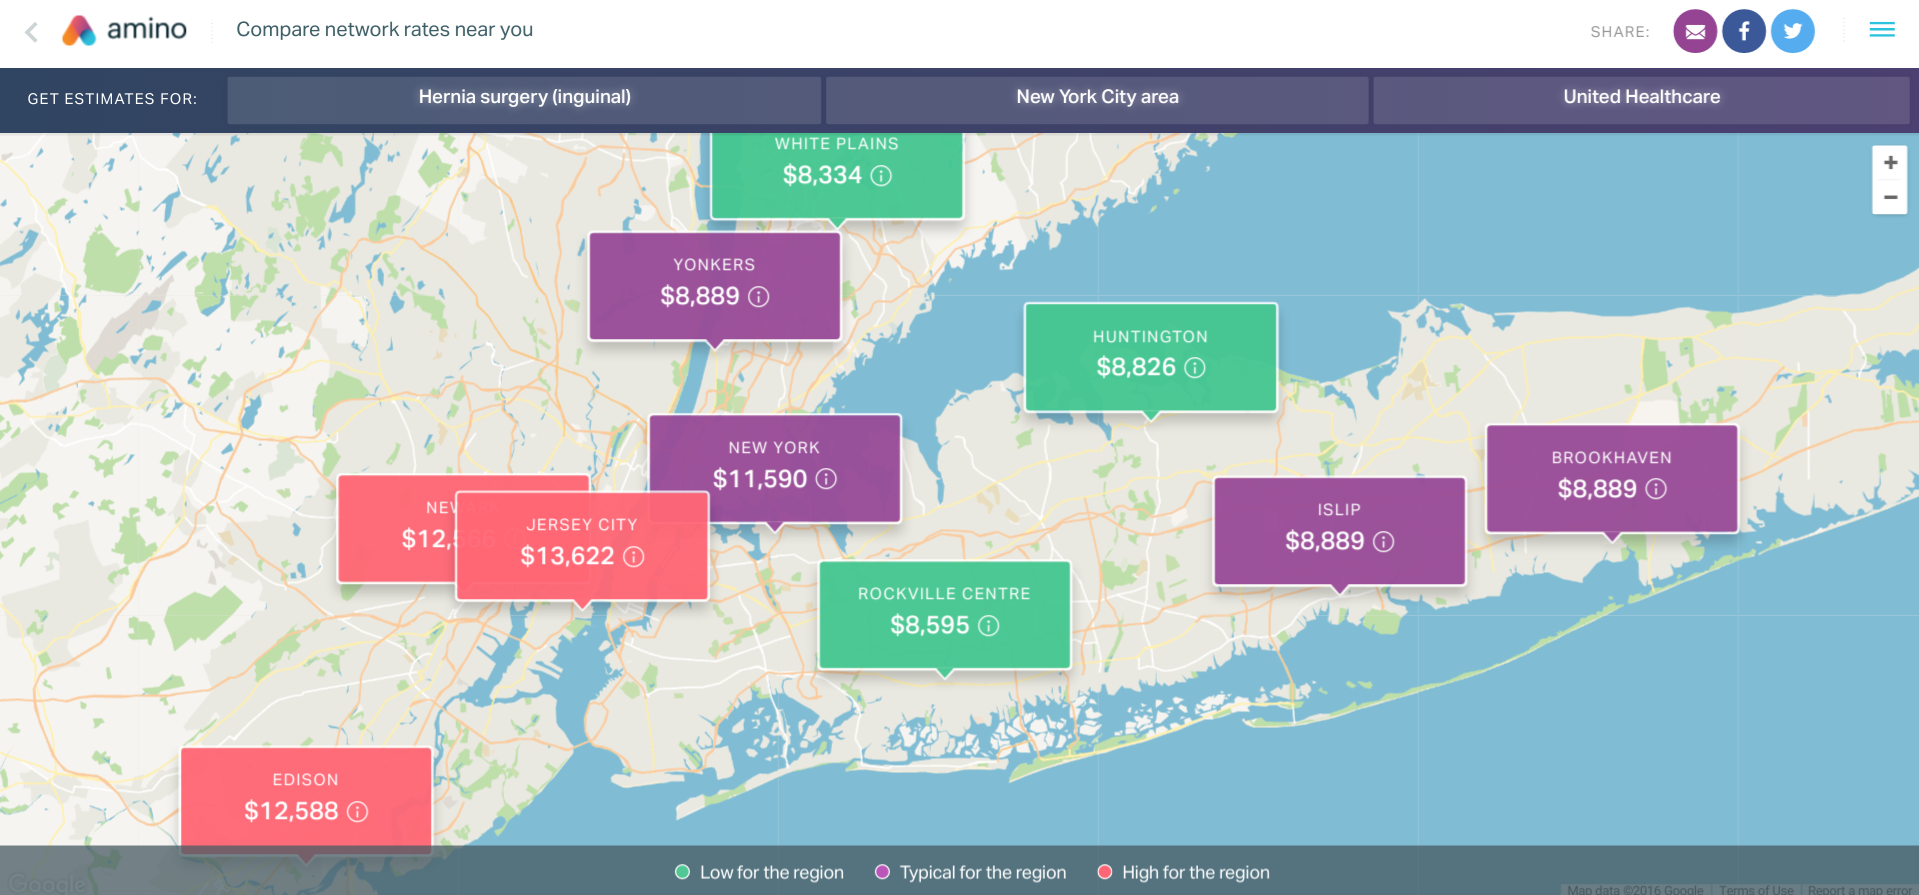 Amino's comparison tool tells you how much common procedures cost at different hospitals, incorporating elements like your specific health insurance.